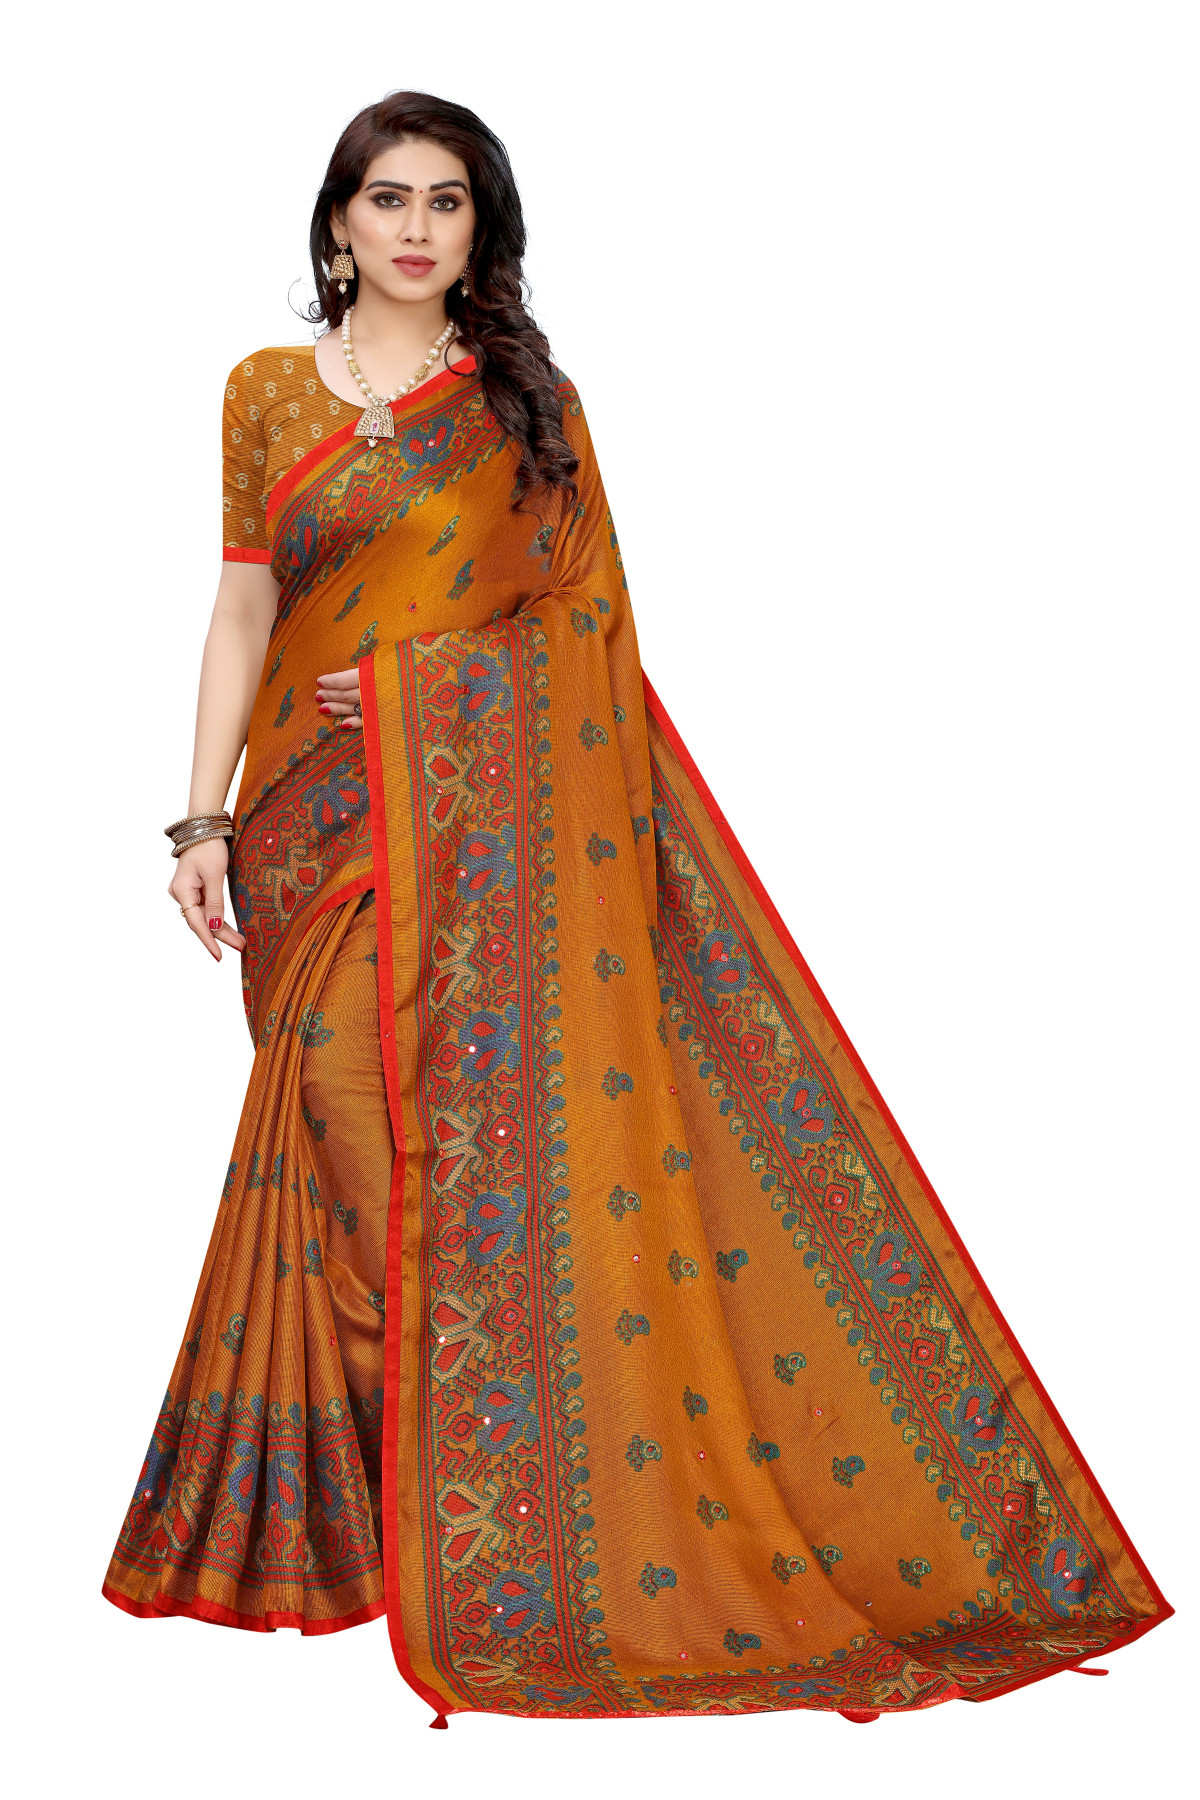 Linen Sarees - Buy Designer Orange Printed Linen Sarees For Womens Online in India | Ethnicbazaar